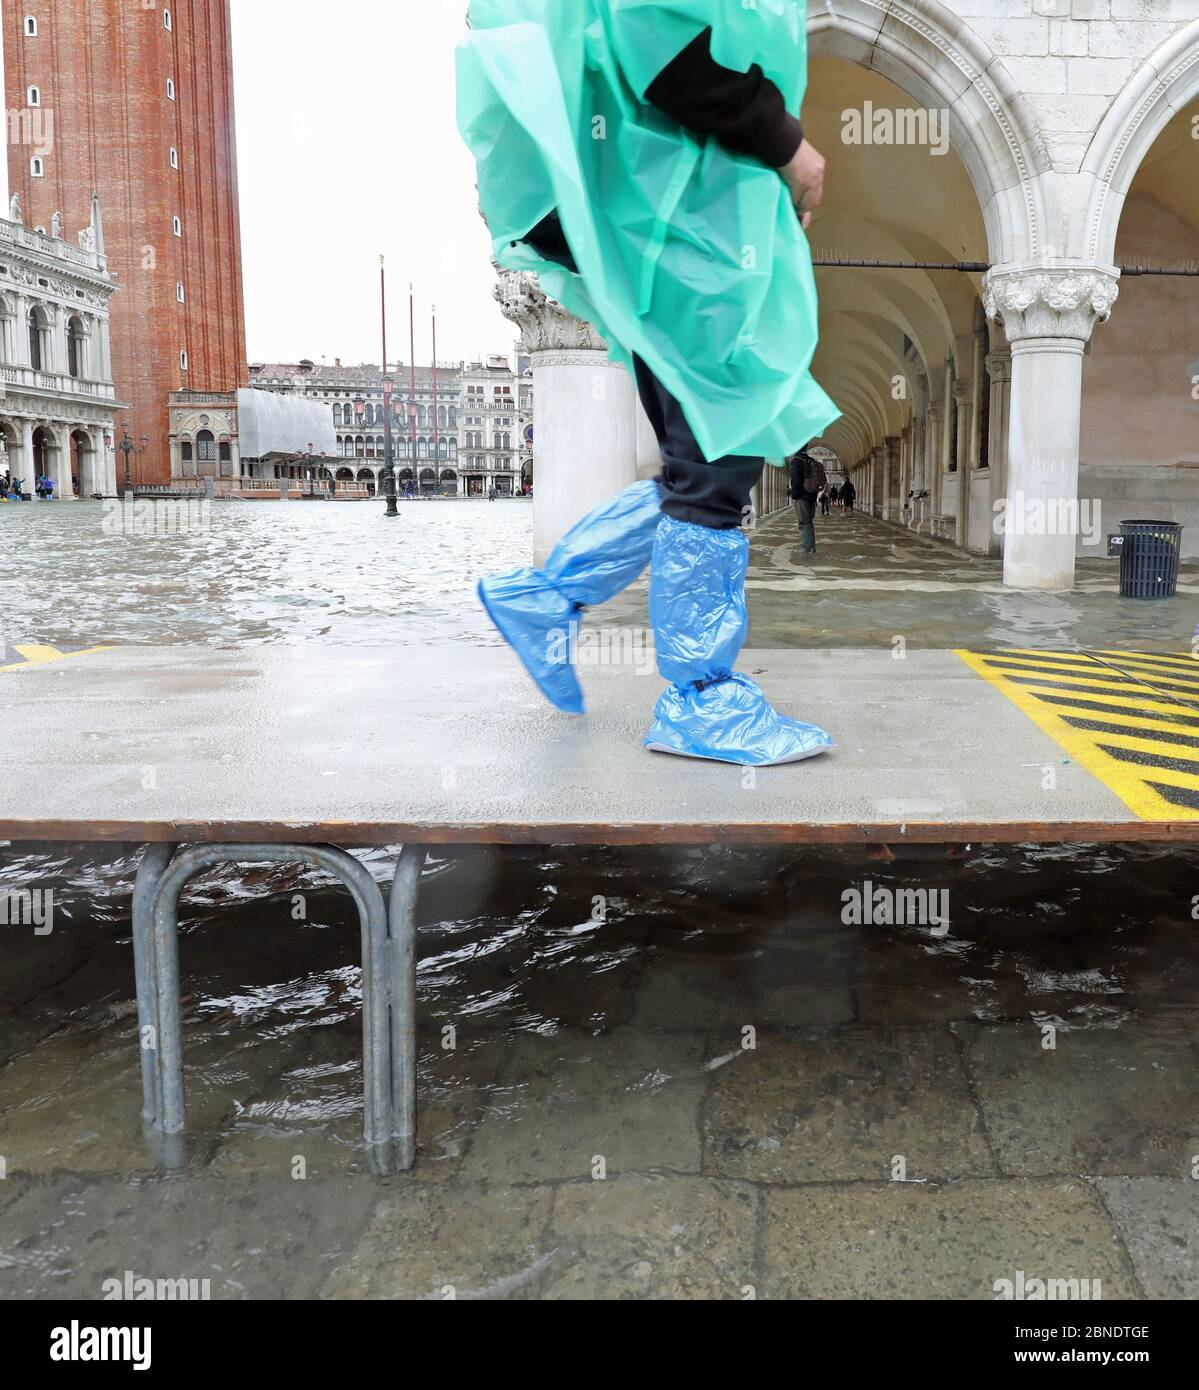 hasty tourist walks fast on the elevated walkway during high tide in Venice in Italy Stock Photo